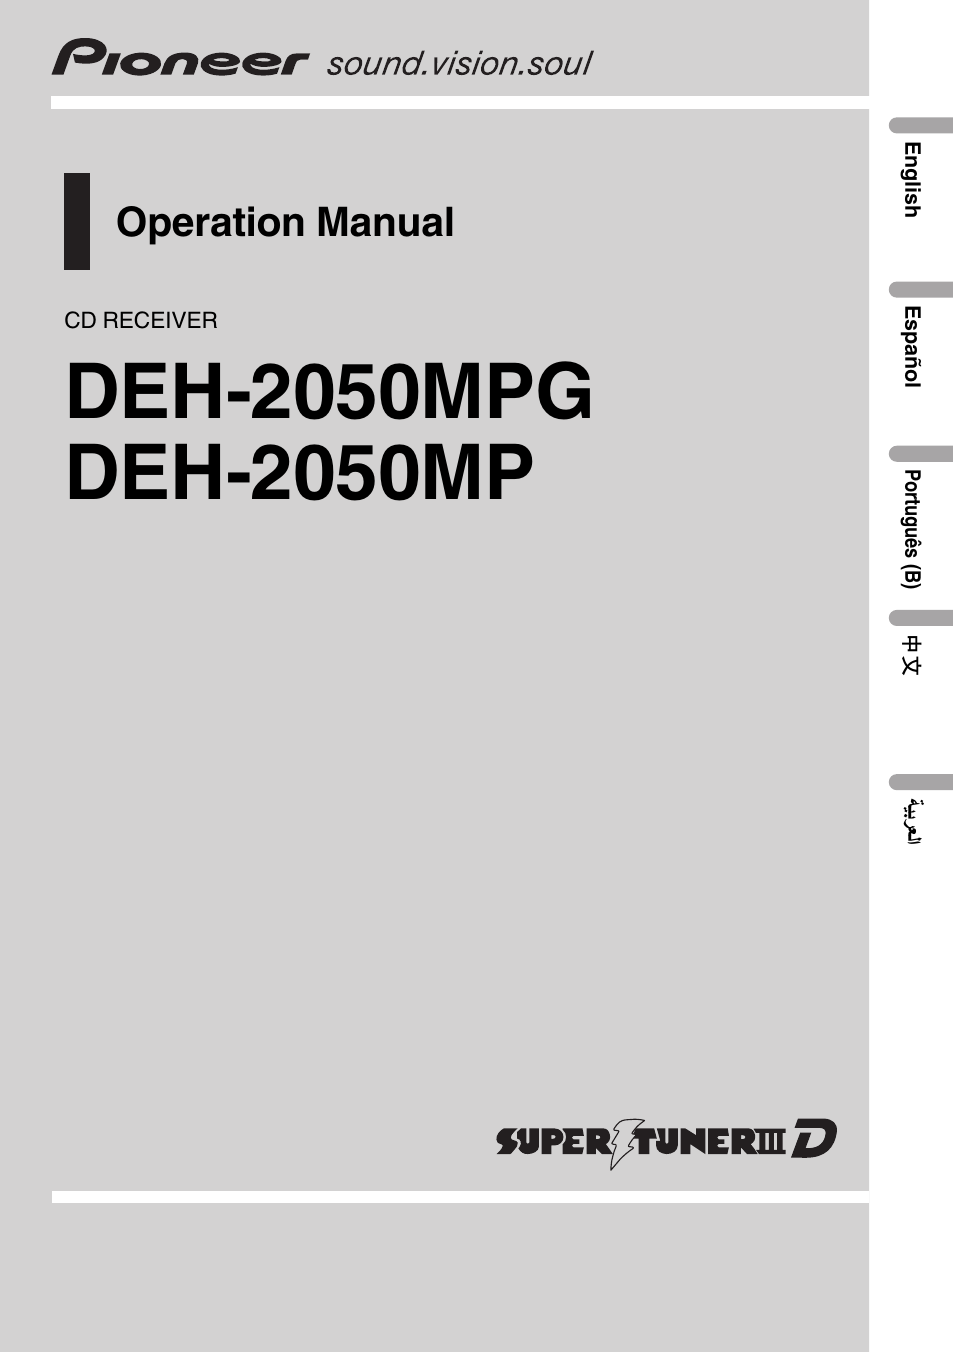 Pioneer DEH-2050MPG User Manual | 76 pages | Also for: DEH-2050MP